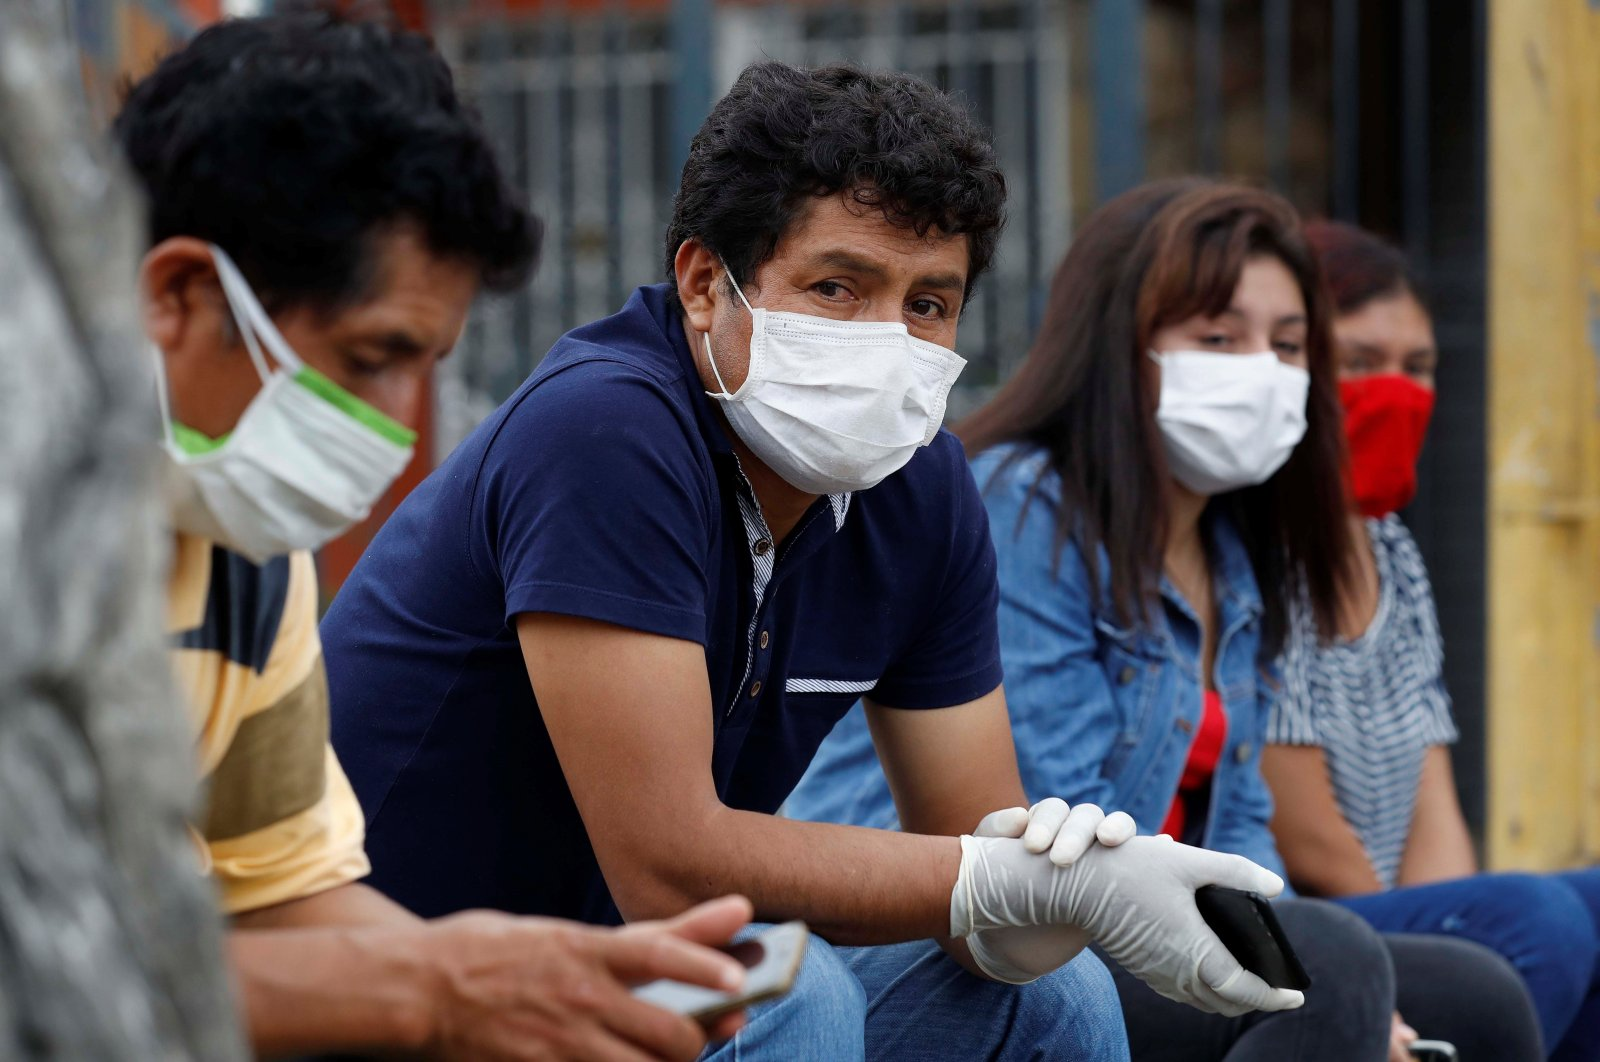 People with symptoms of COVID-19 are waiting to be tested in a tent installed outside the Casimiro Ulloa emergency hospital in Lima, Peru, April 1, 2020. (EPA Photo)